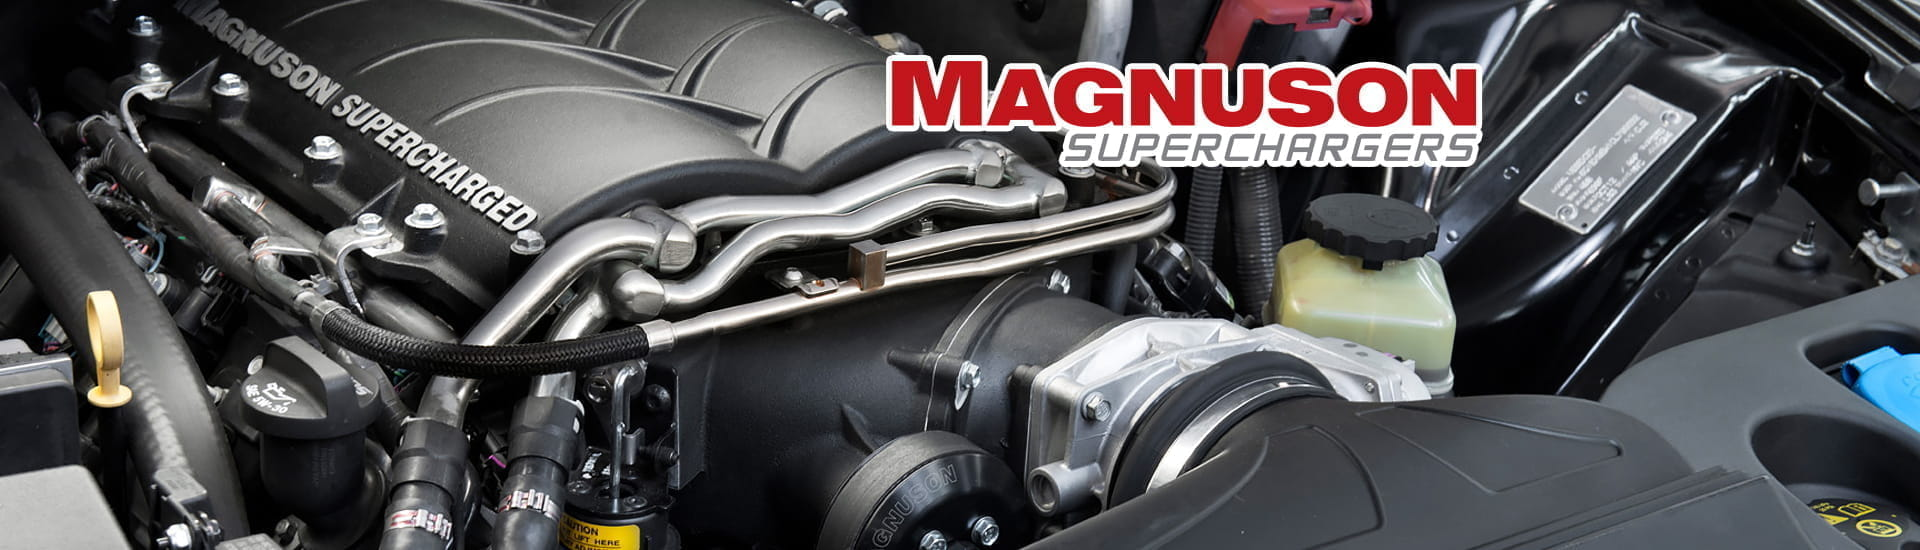 Magnuson supercharger